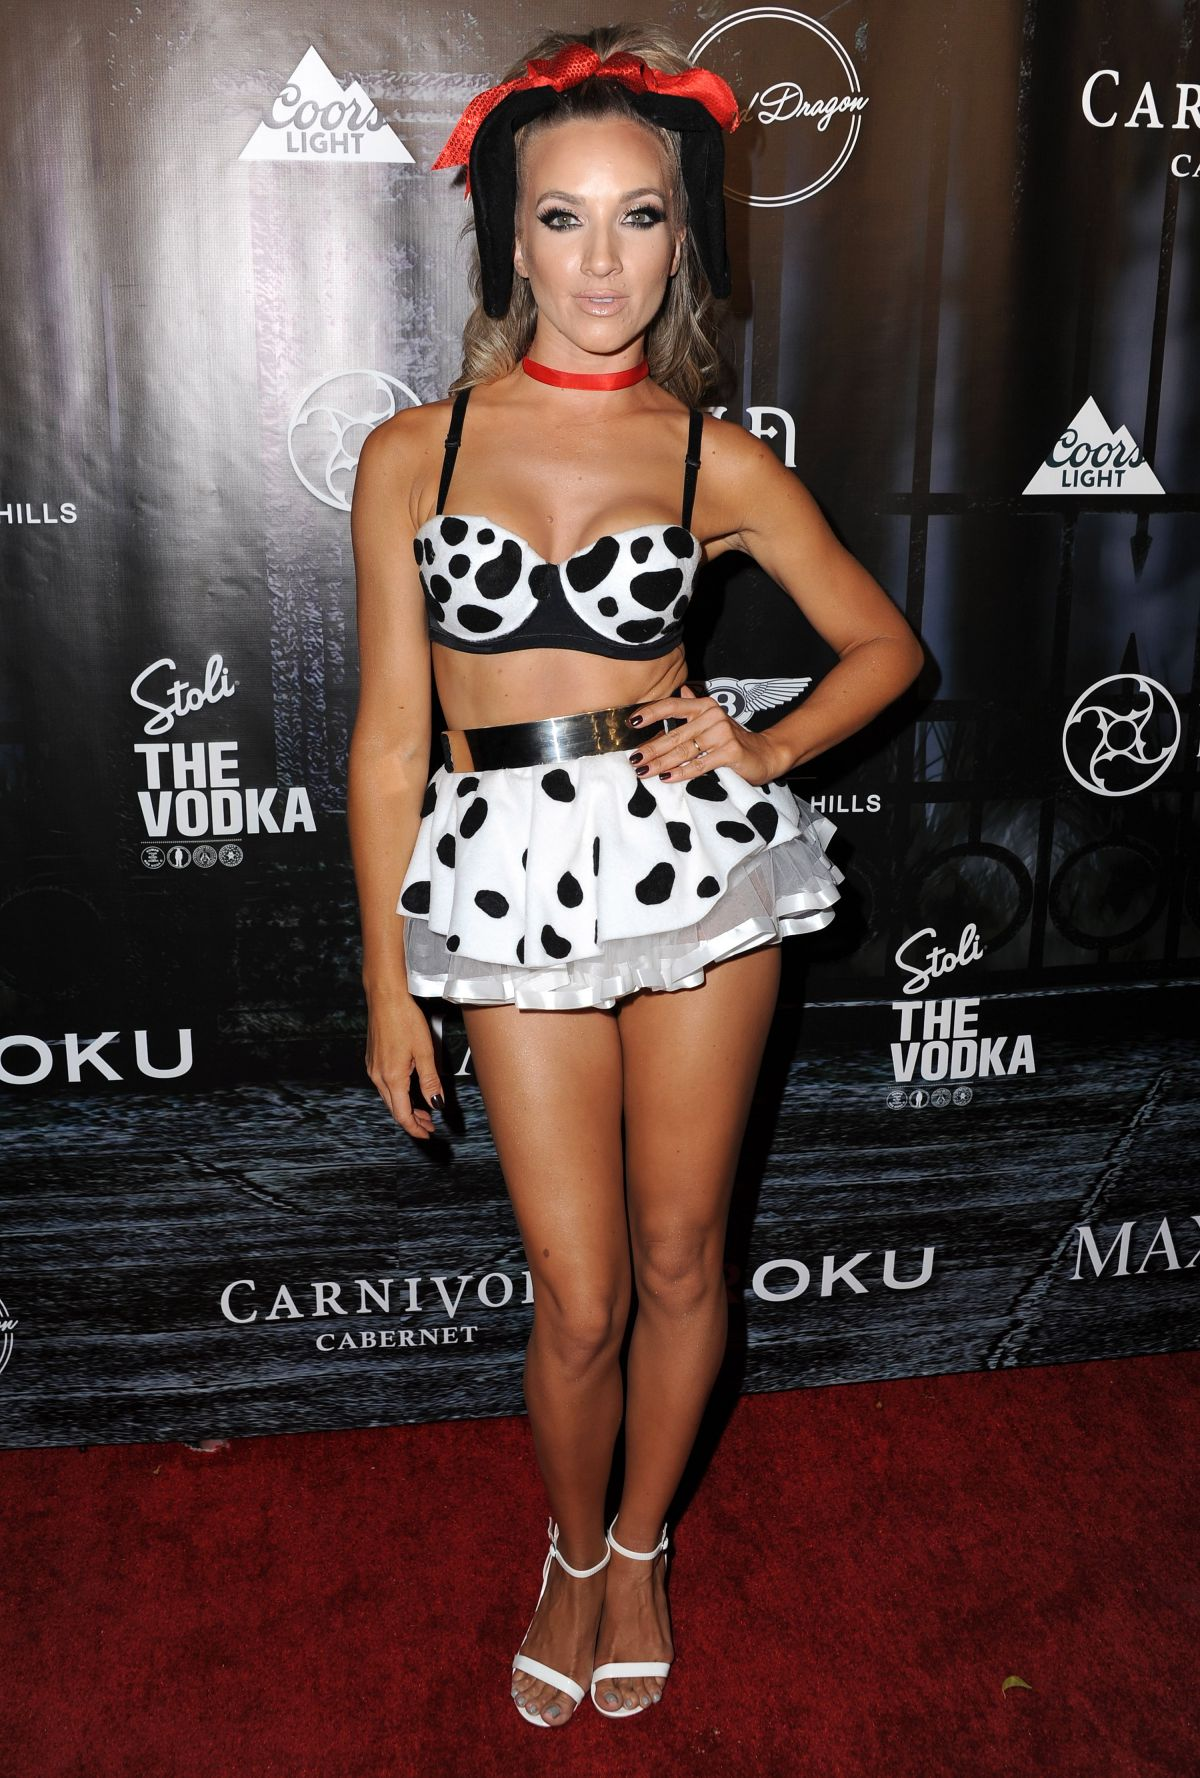 SHANNON BEX at Maxim Magazine's Official Halloween Party in Beverly Hills 10/24/2015